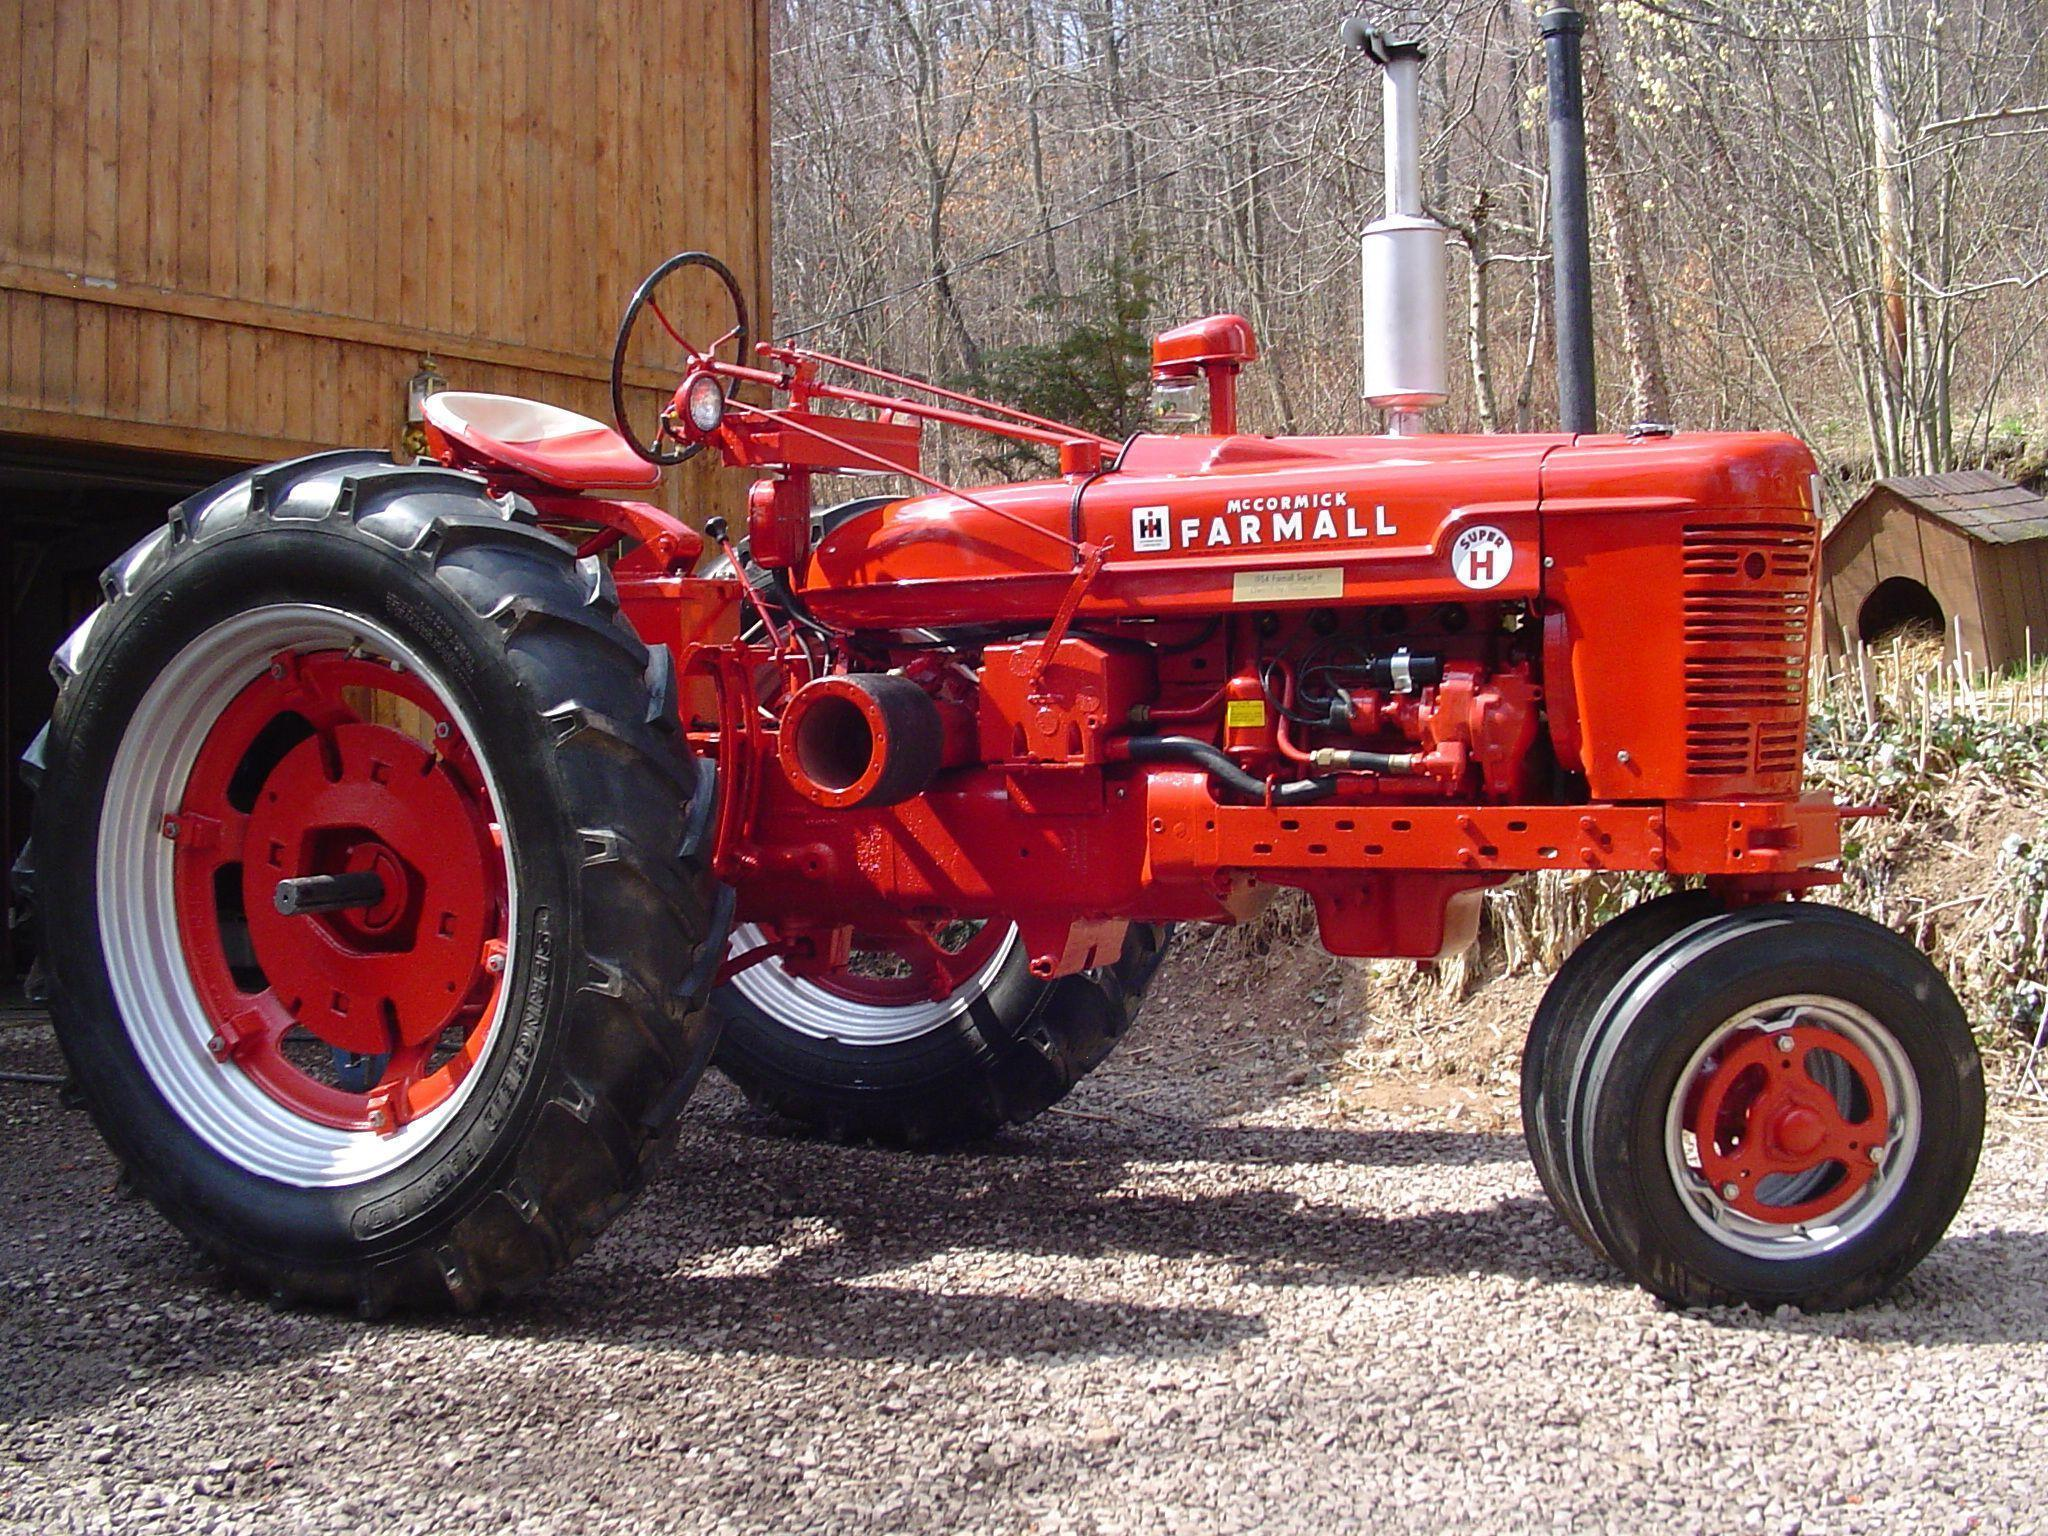 138 best images about I'm Liking The Farmall Tractor's!!! on ...